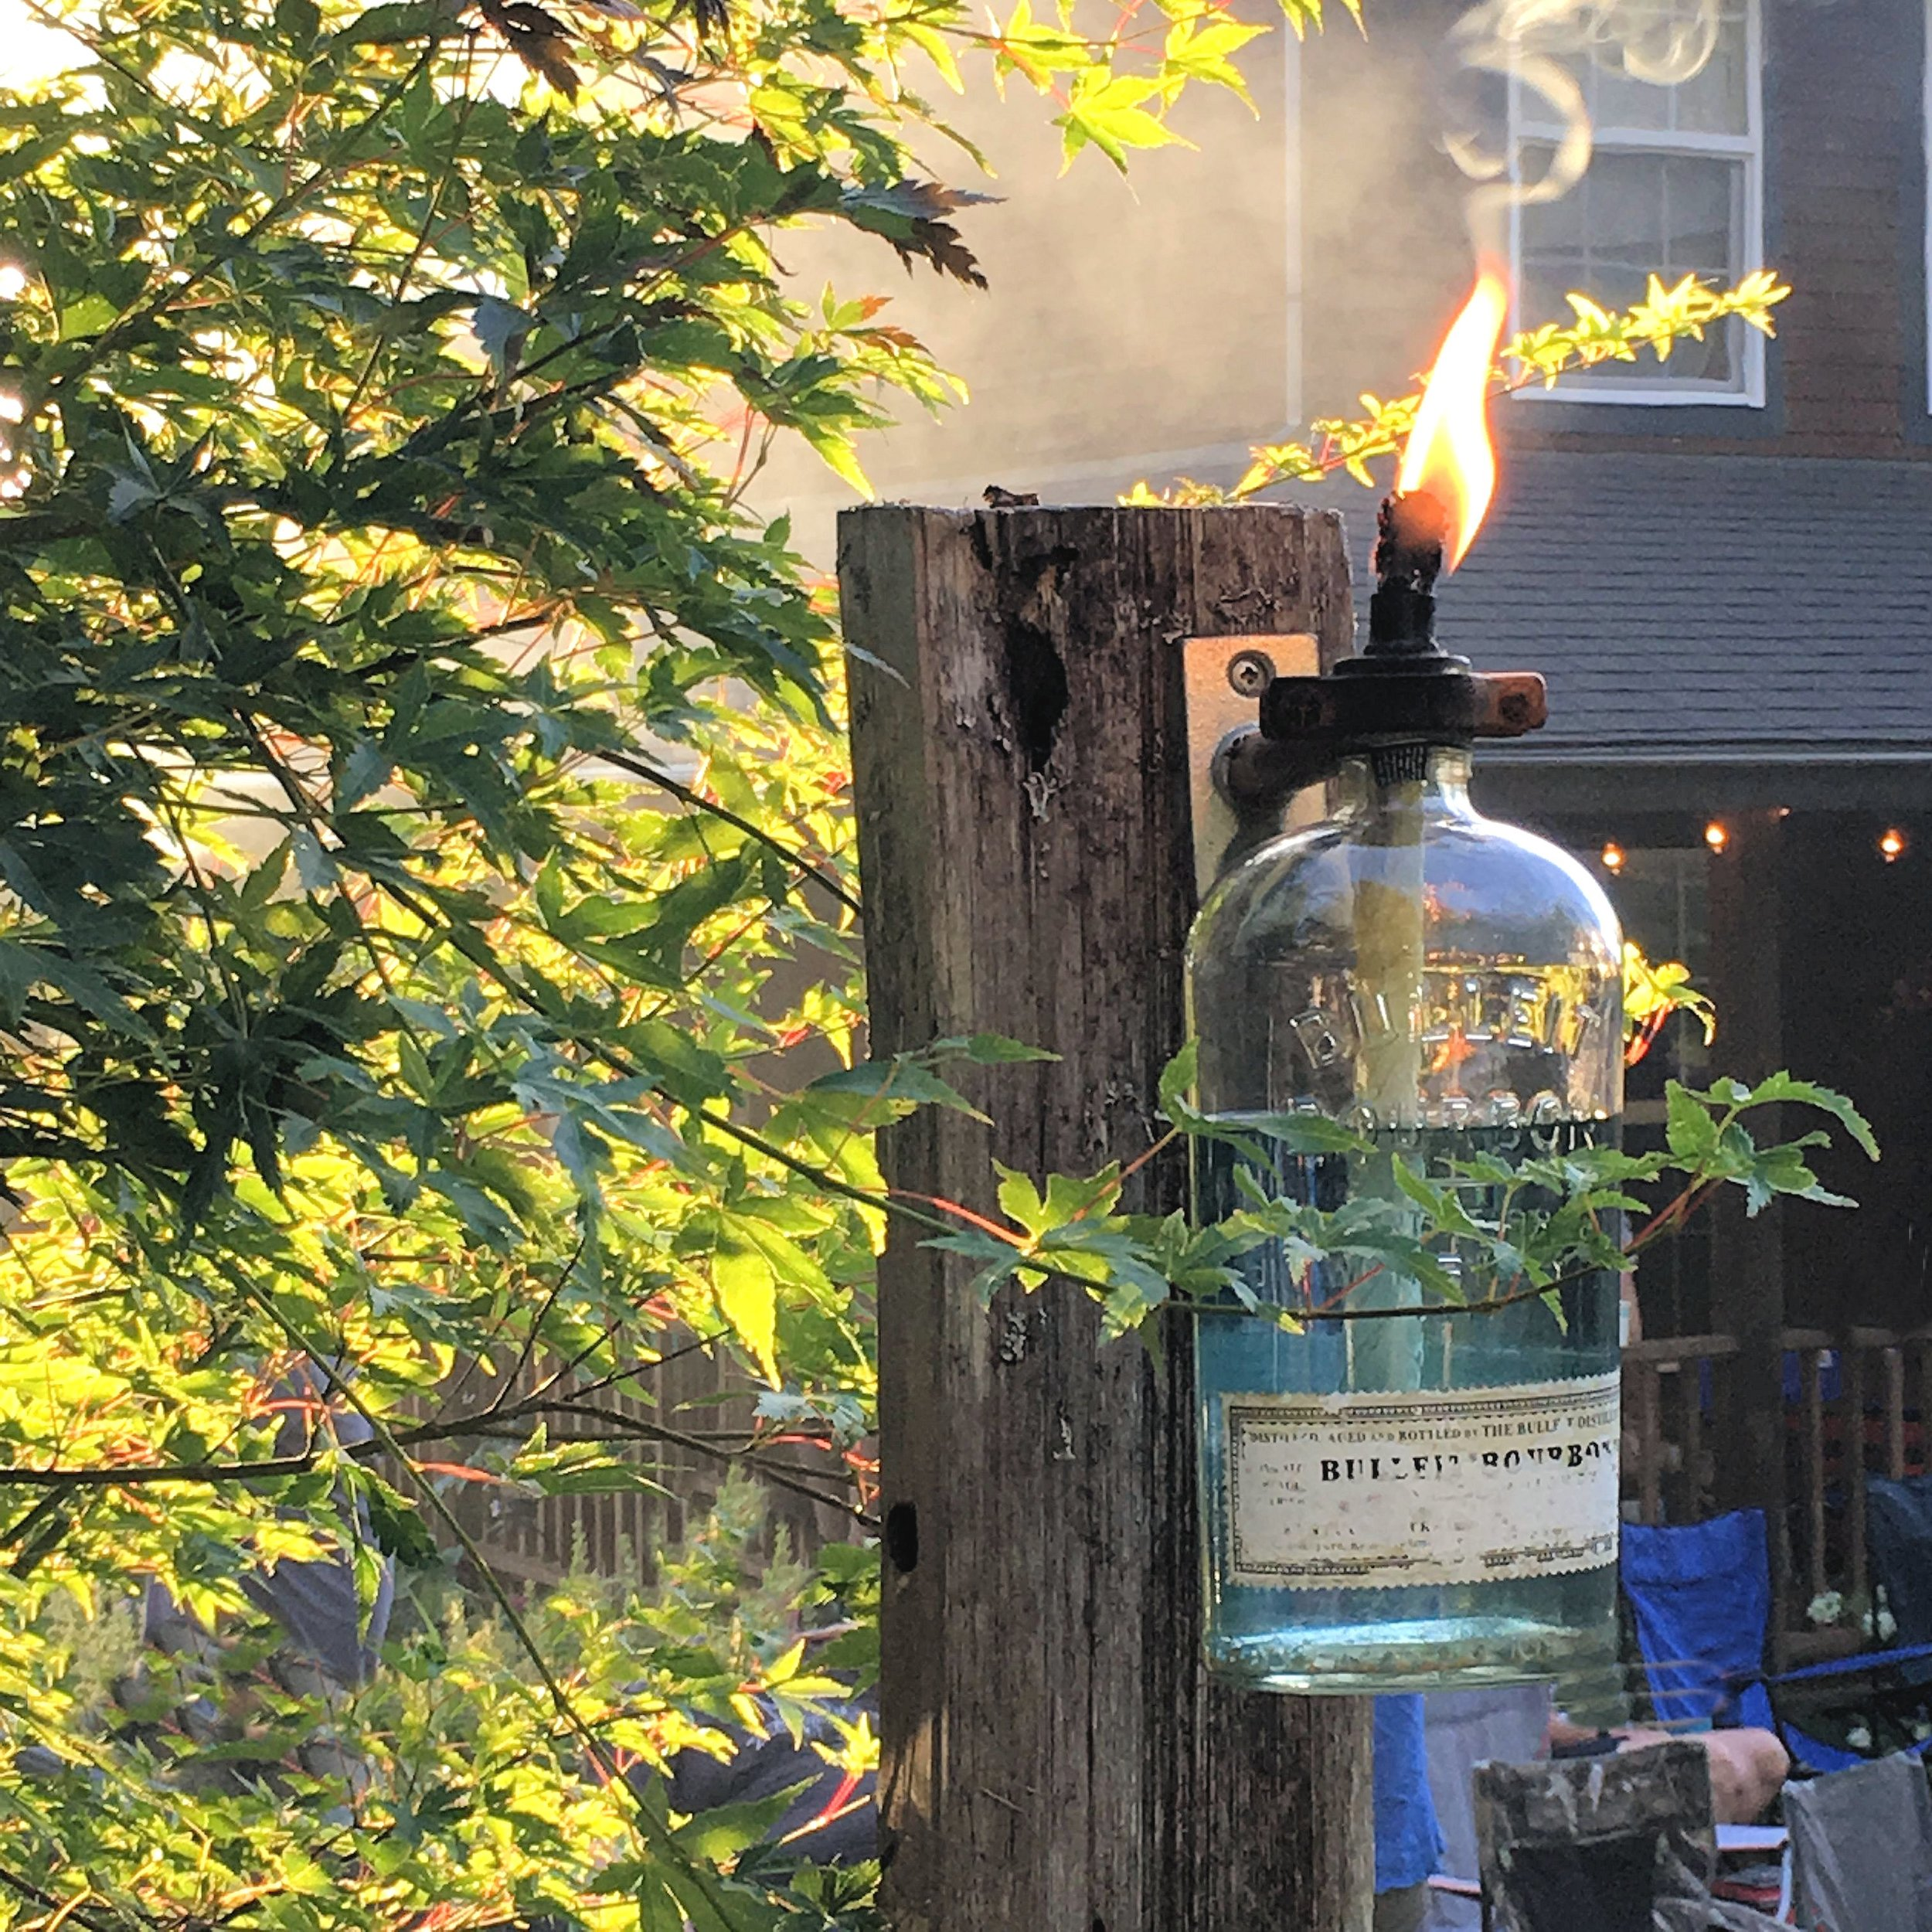 DIY Recycled Wine or Spirits Bottle Torch